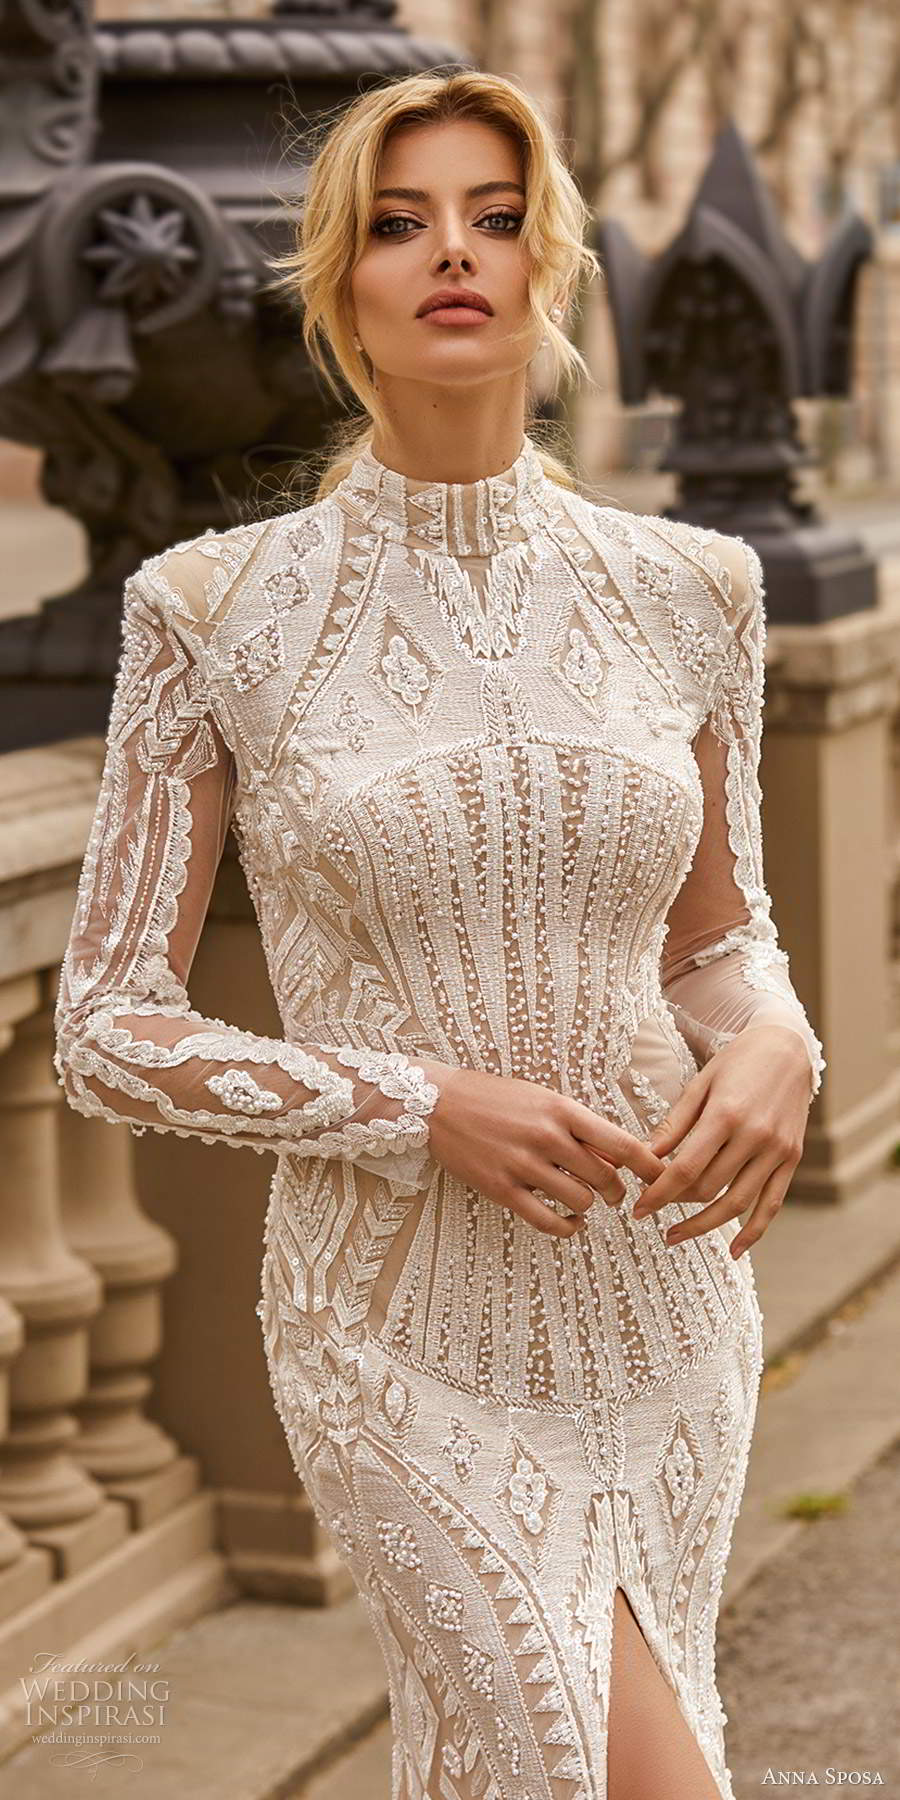 anna sposa 2021 bridal long sleeves high neckline fully embellished lace sheath wedding dress chapel tain (25) zv